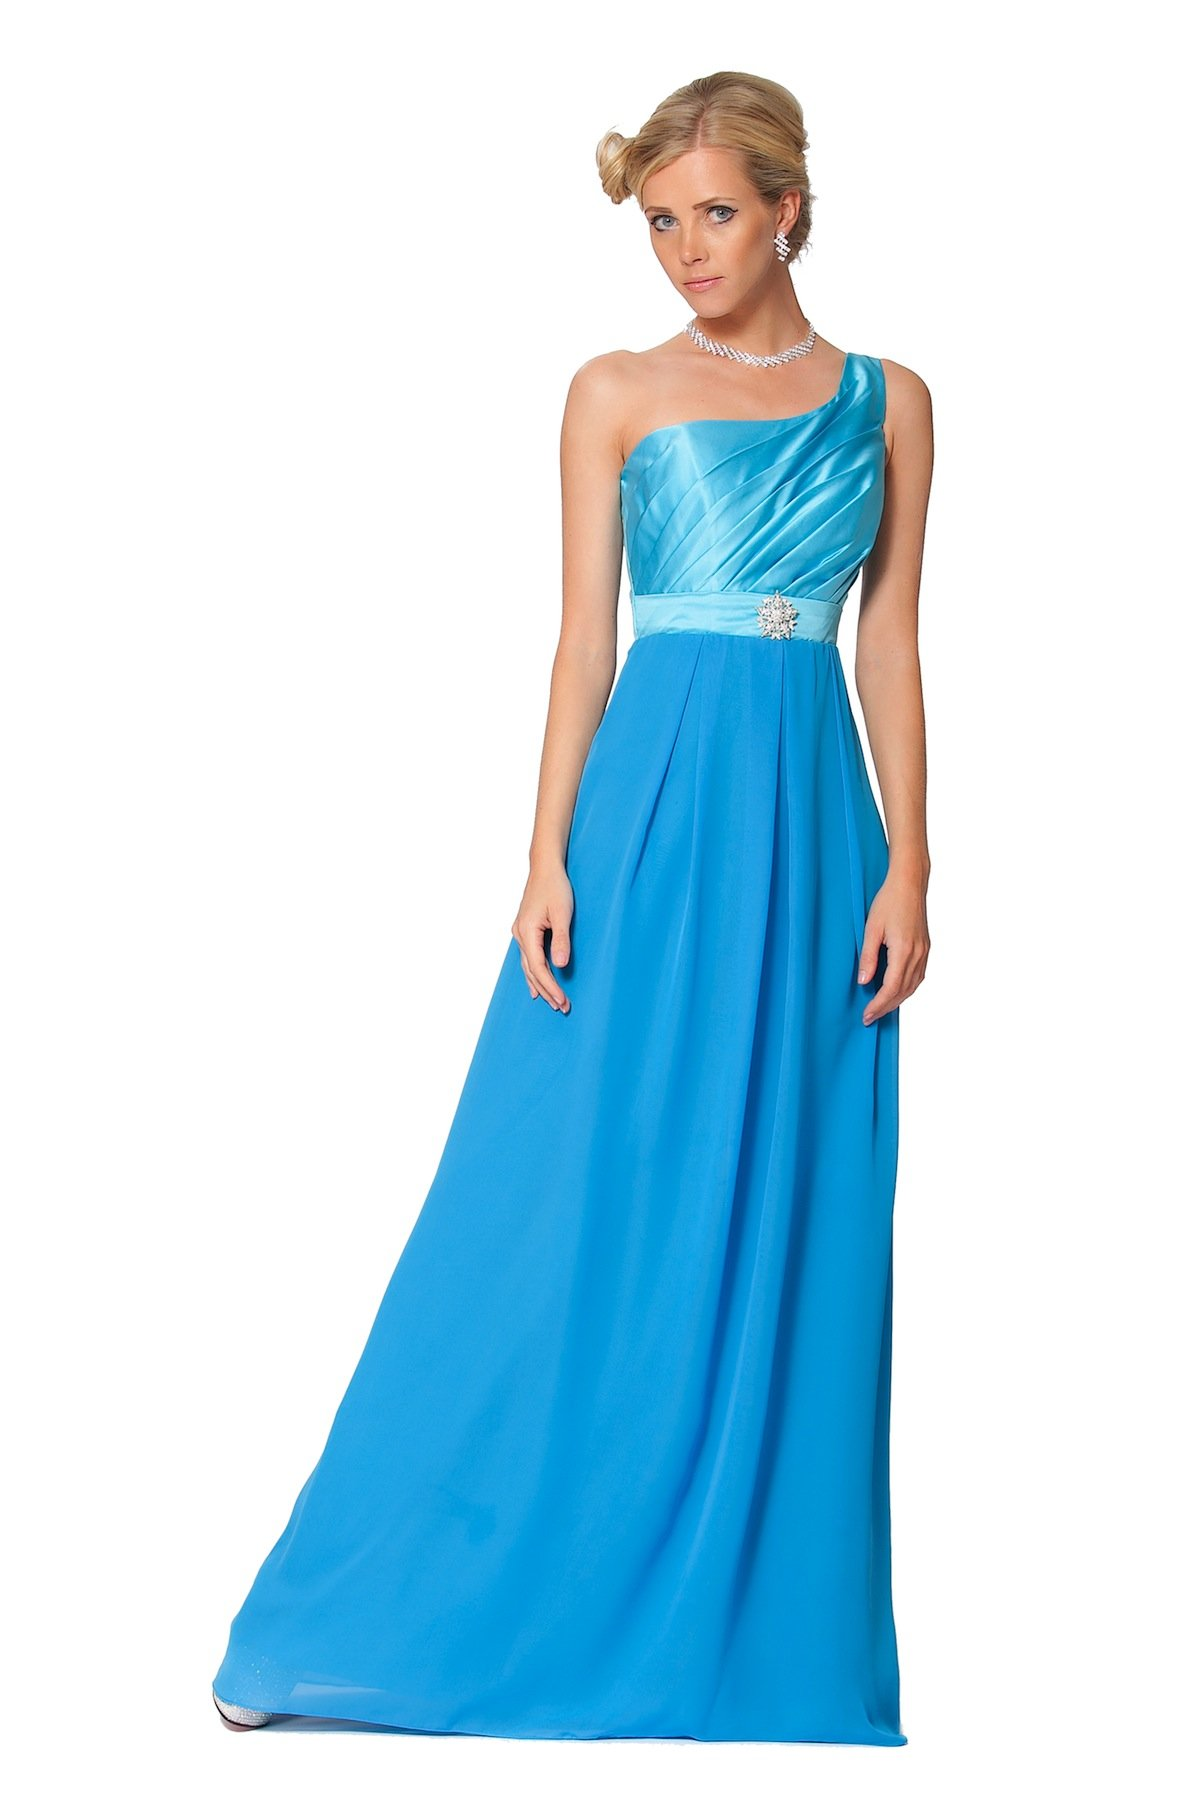 SEXYHER Elegant Roman Style One Shoulder Ruched Evening Bridesmaids Dress (UK22)